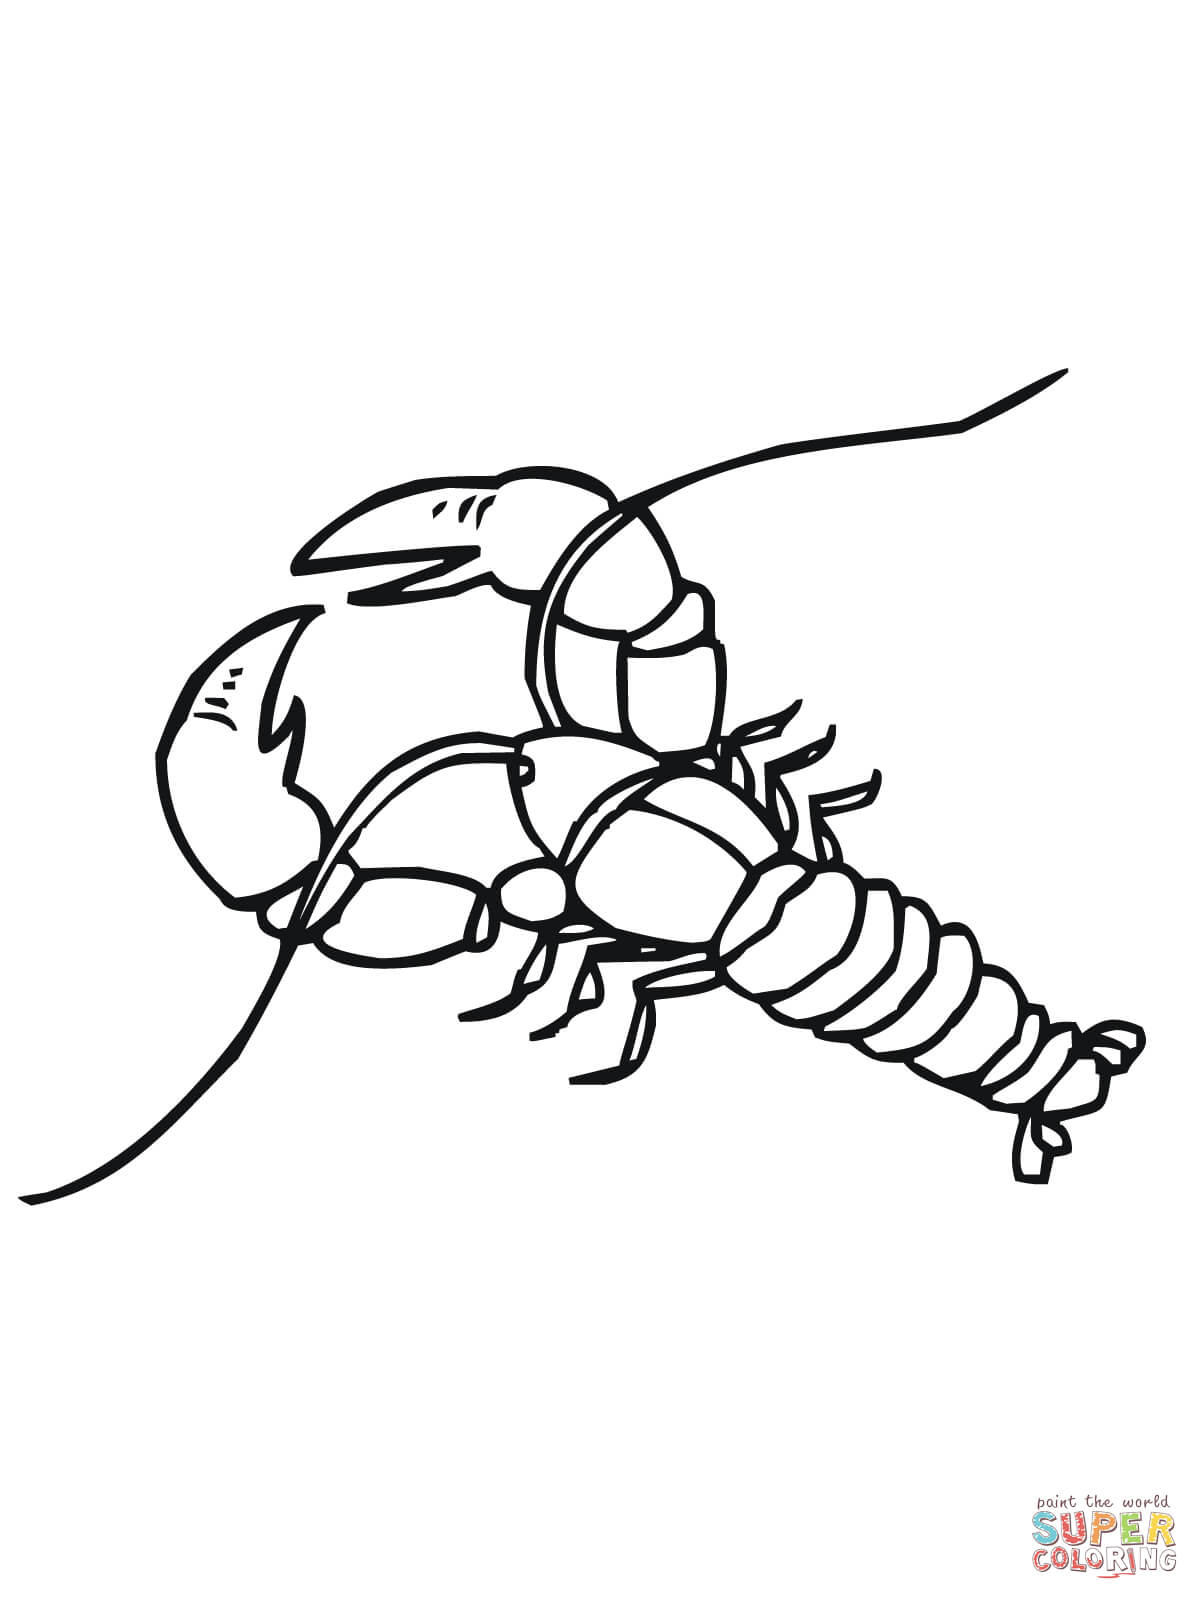 Crawfish Coloring Page